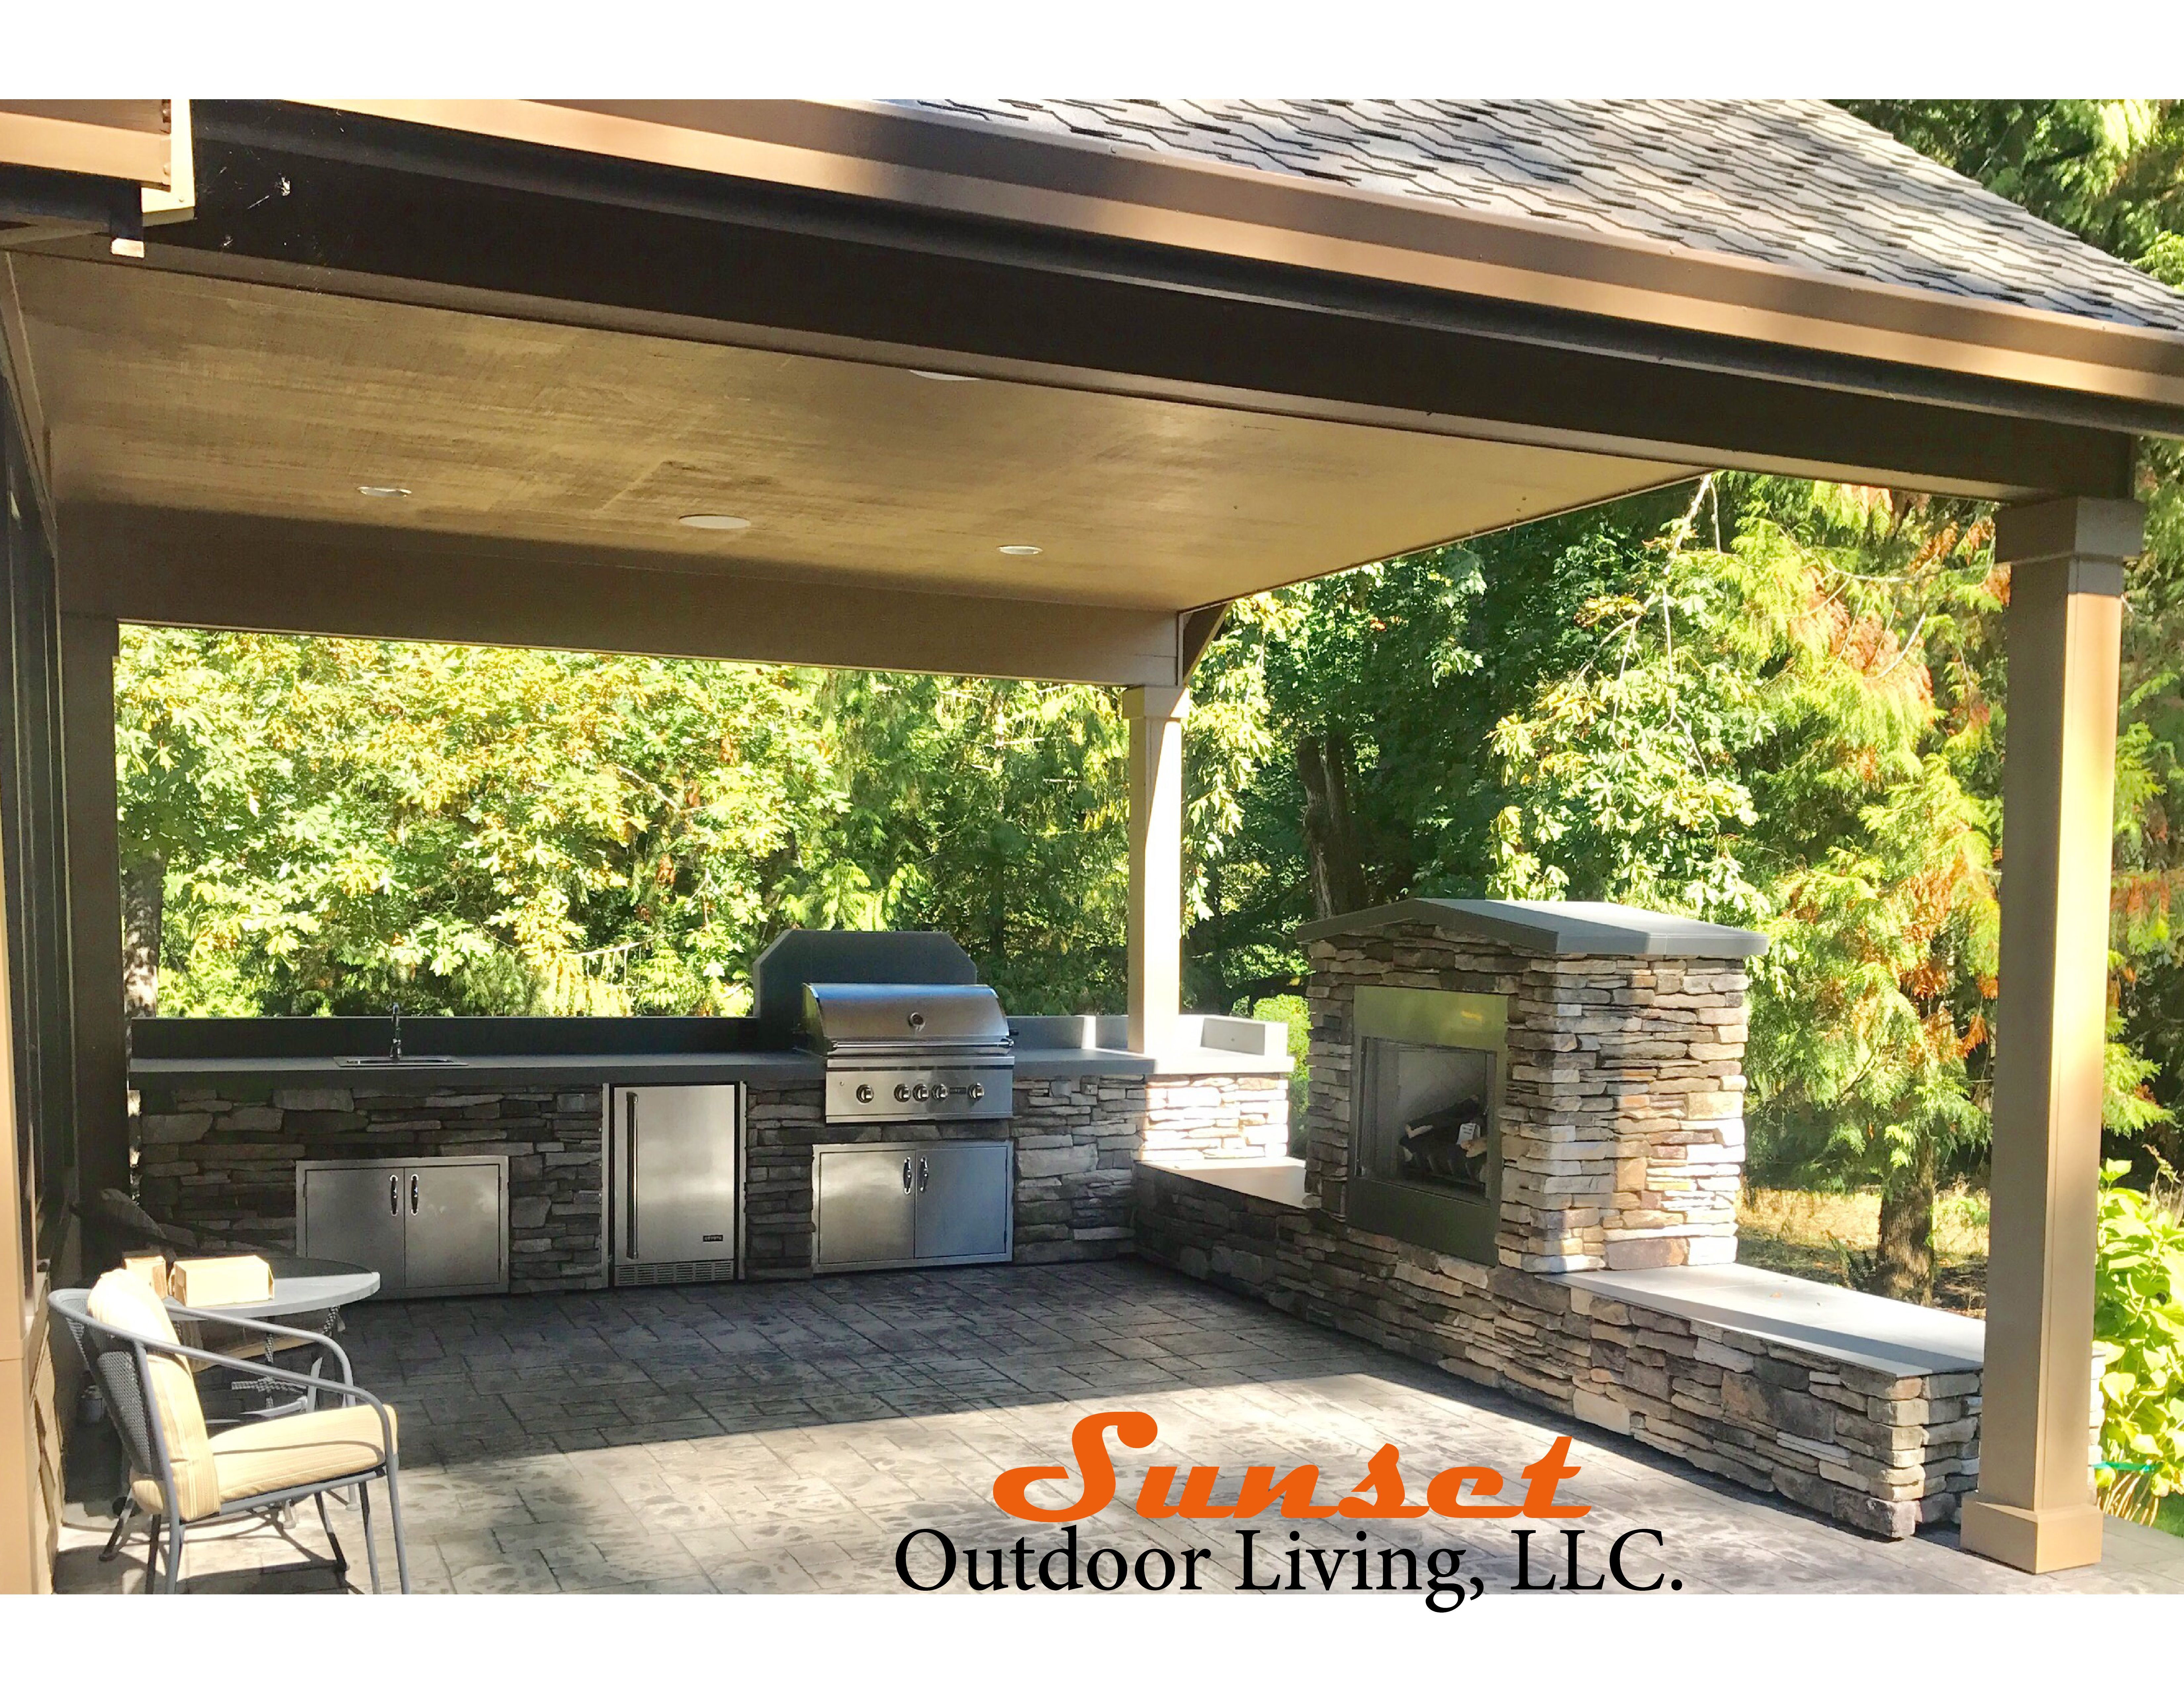 20dedaad0d53acc45a4f329d966ae7b4 Top Result 50 Awesome Steel Outdoor Fireplace Gallery 2018 Hiw6